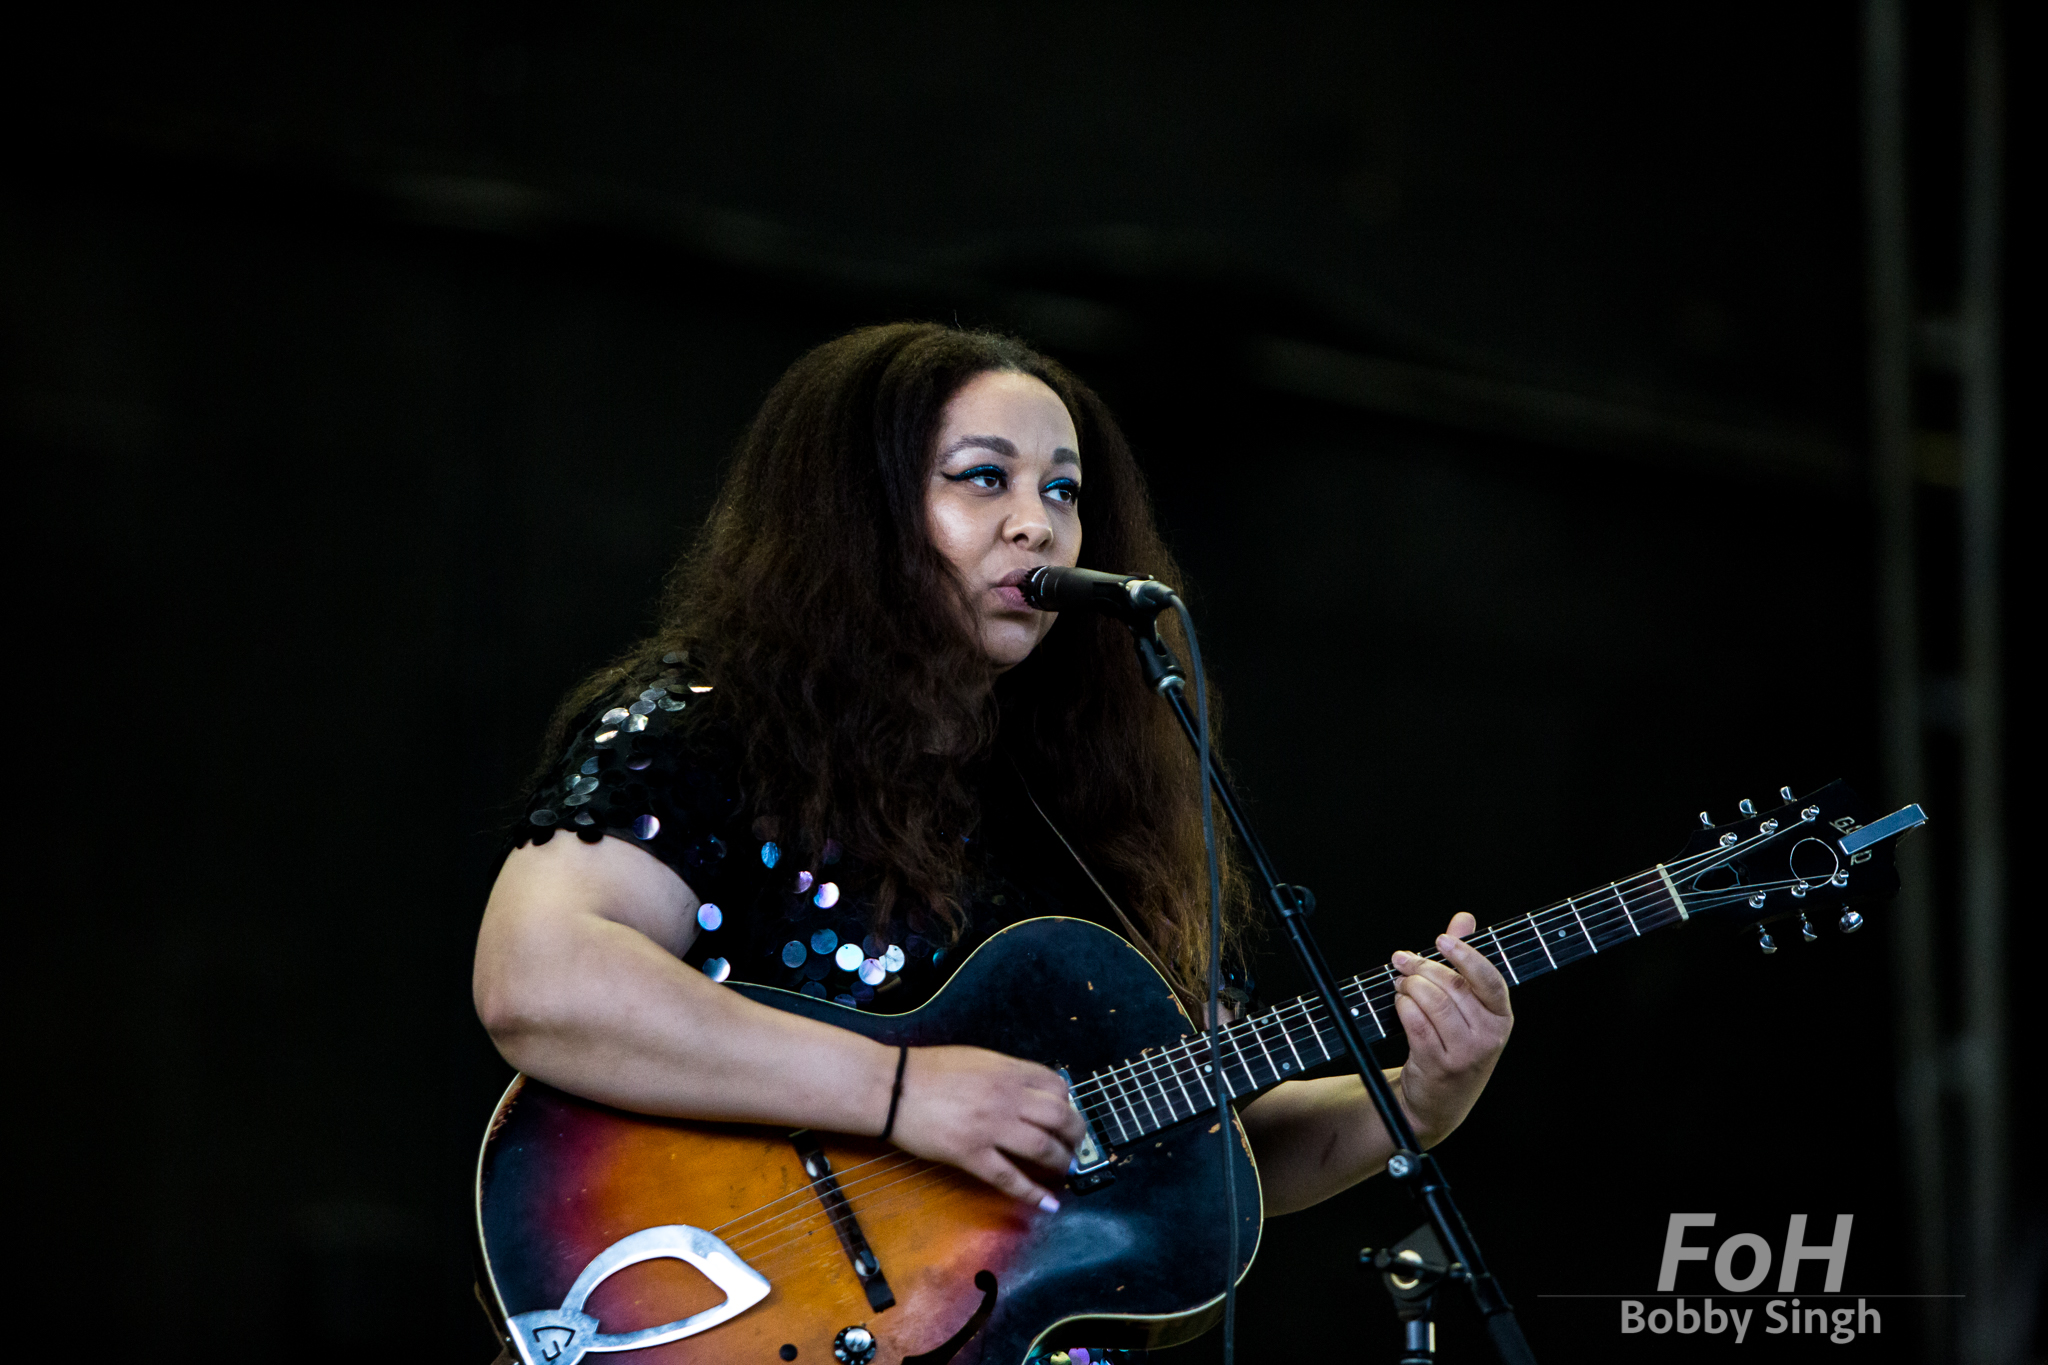 Soul singer Nuela Charles performs at the CBC Music Fest in Toronto, CANADA